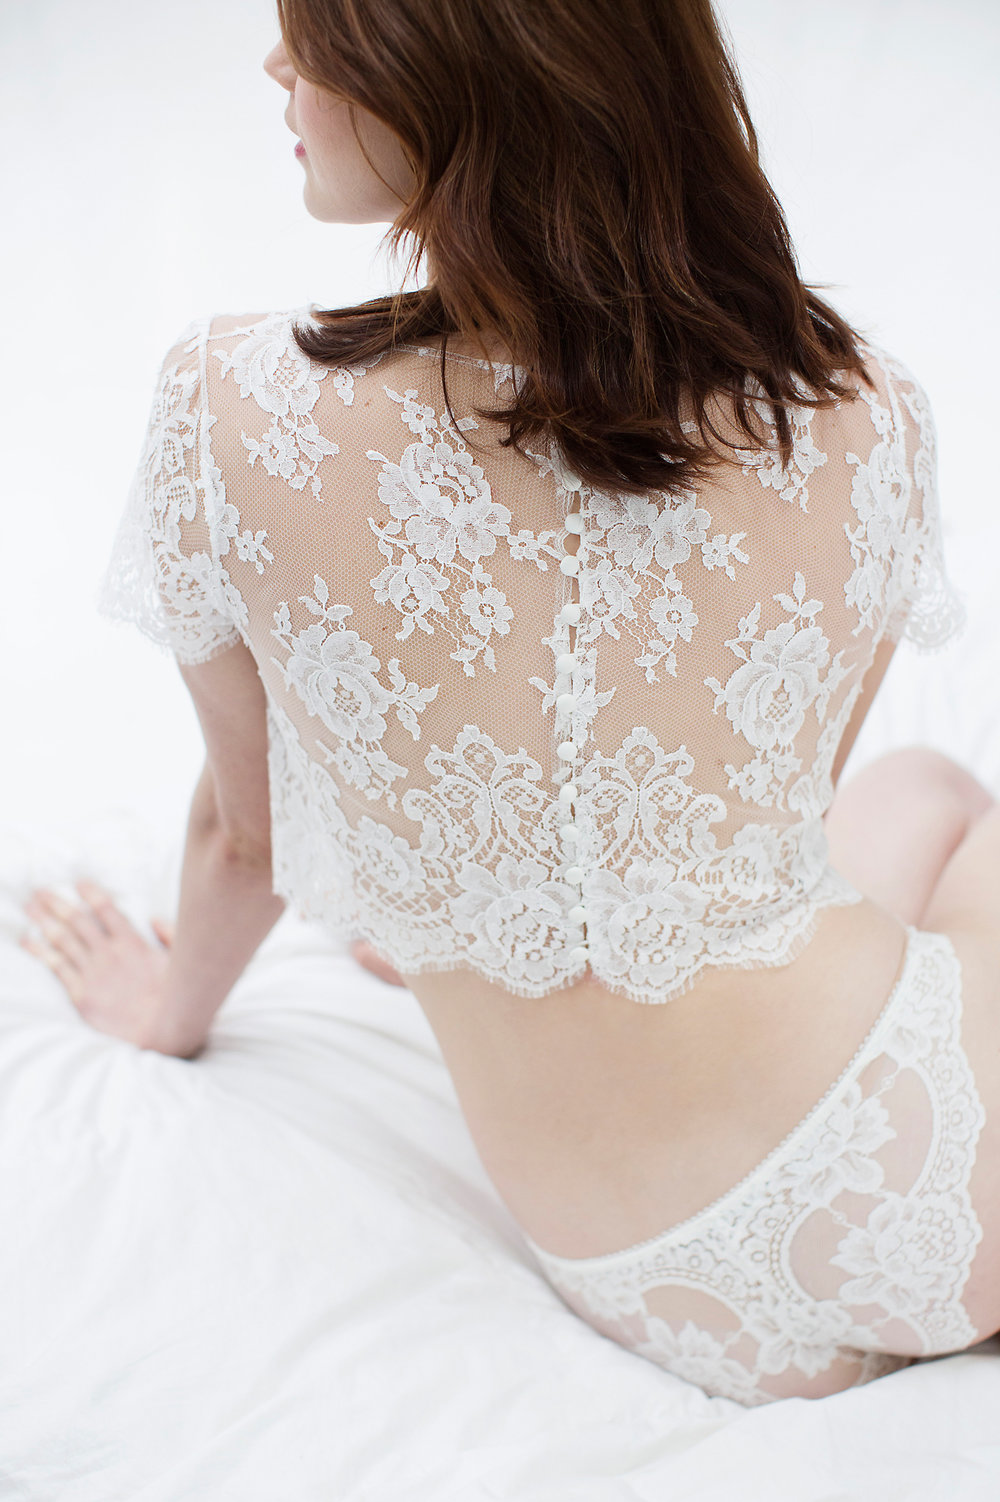 GirlandaSeriousDream Rosa leavers french lace panties and Rosa French Lace Top.jpg